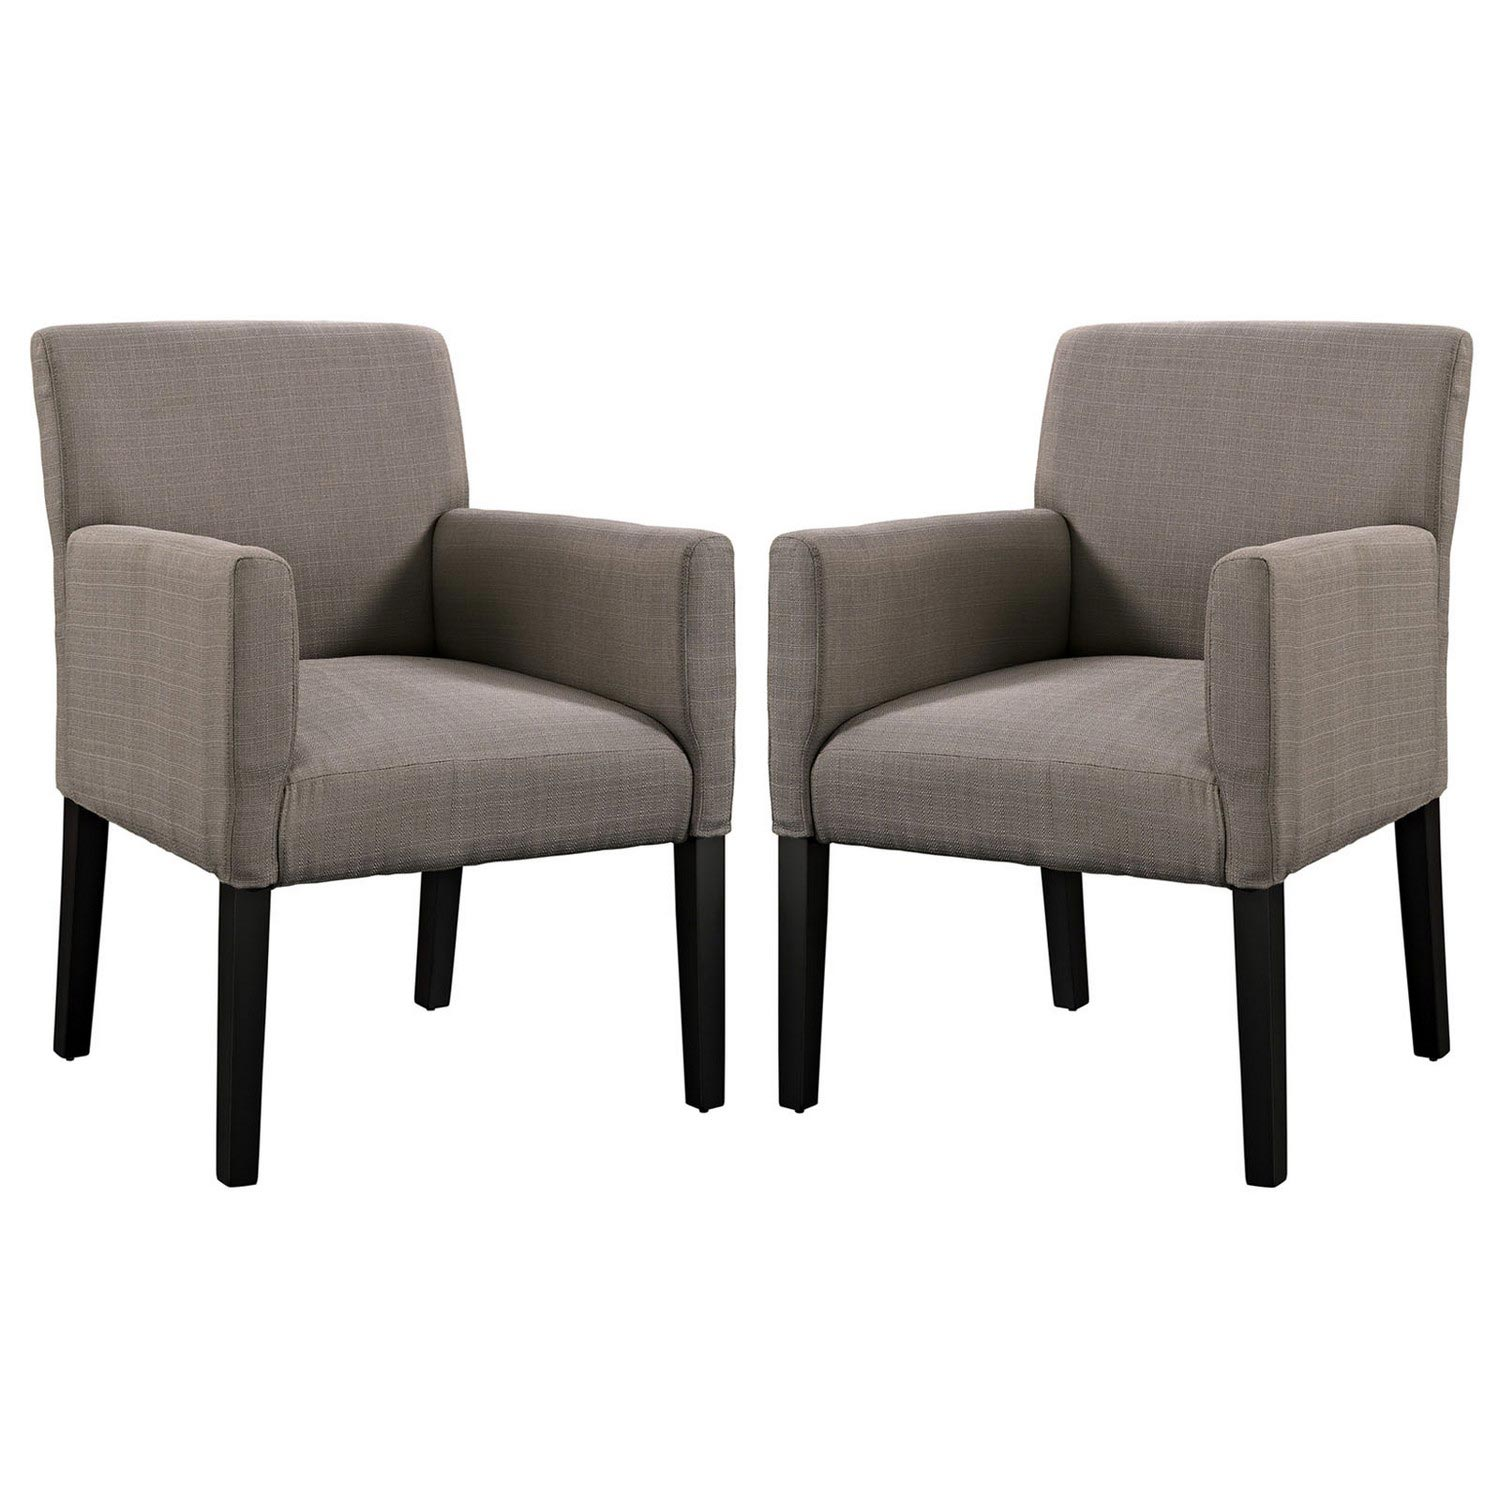 Modway Chloe Armchair Set of 2 - Gray